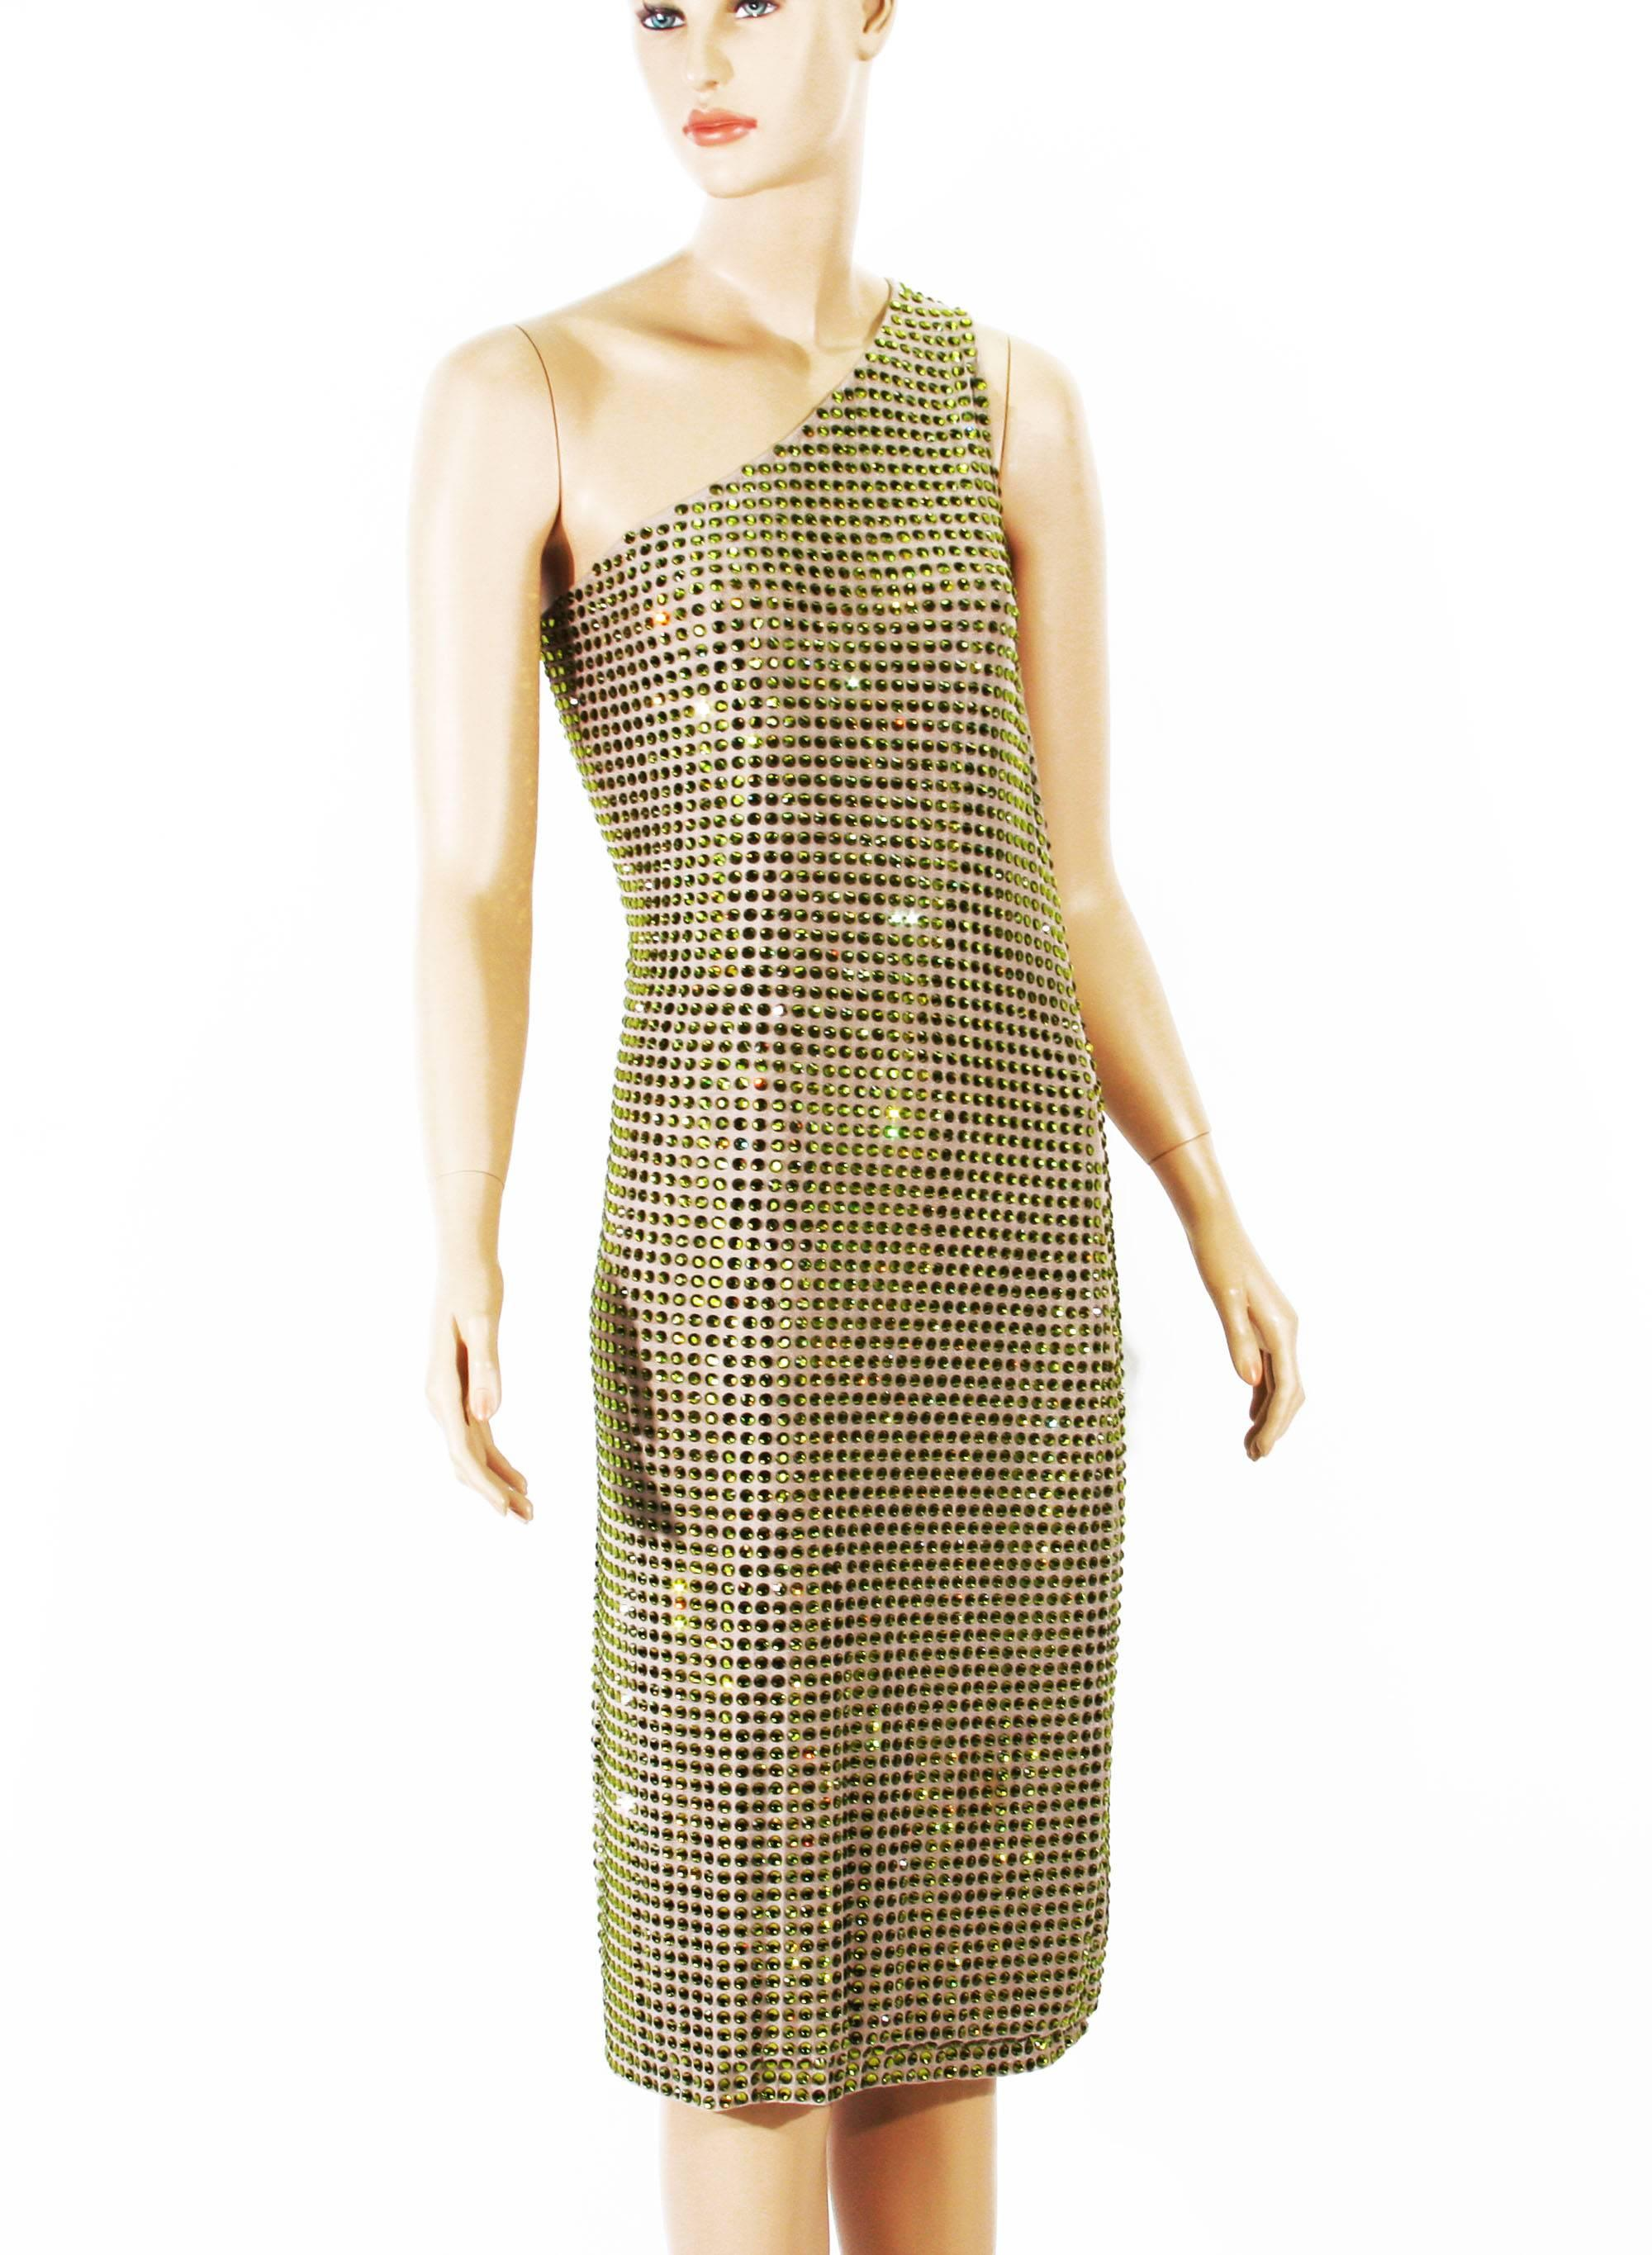 4192bff6e5 Tom Ford for Gucci SS 2000 Runway Fully Crystal Embellished Open Back Dress  42 For Sale at 1stdibs